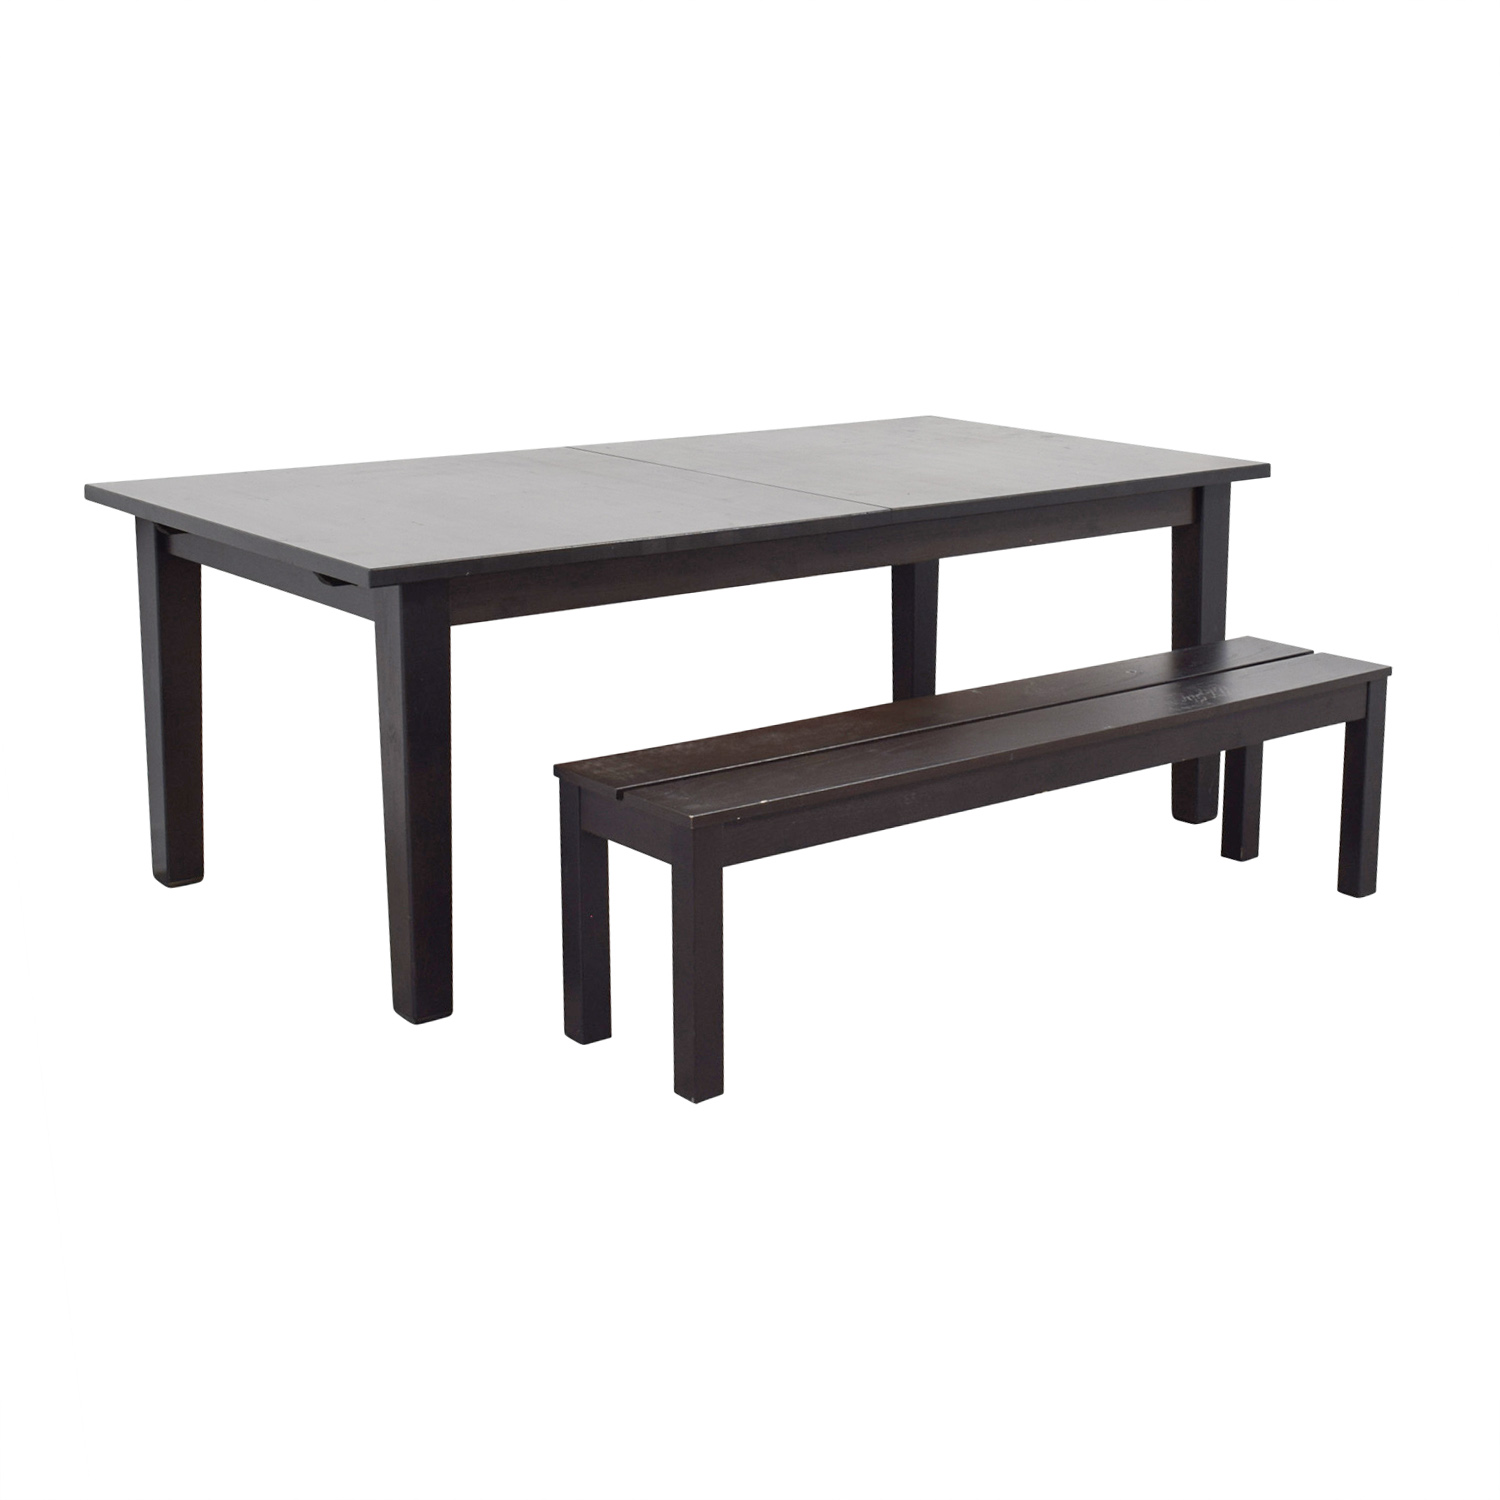 65 Off Ikea Ikea Extendable Dining Room Table With Bench Tables